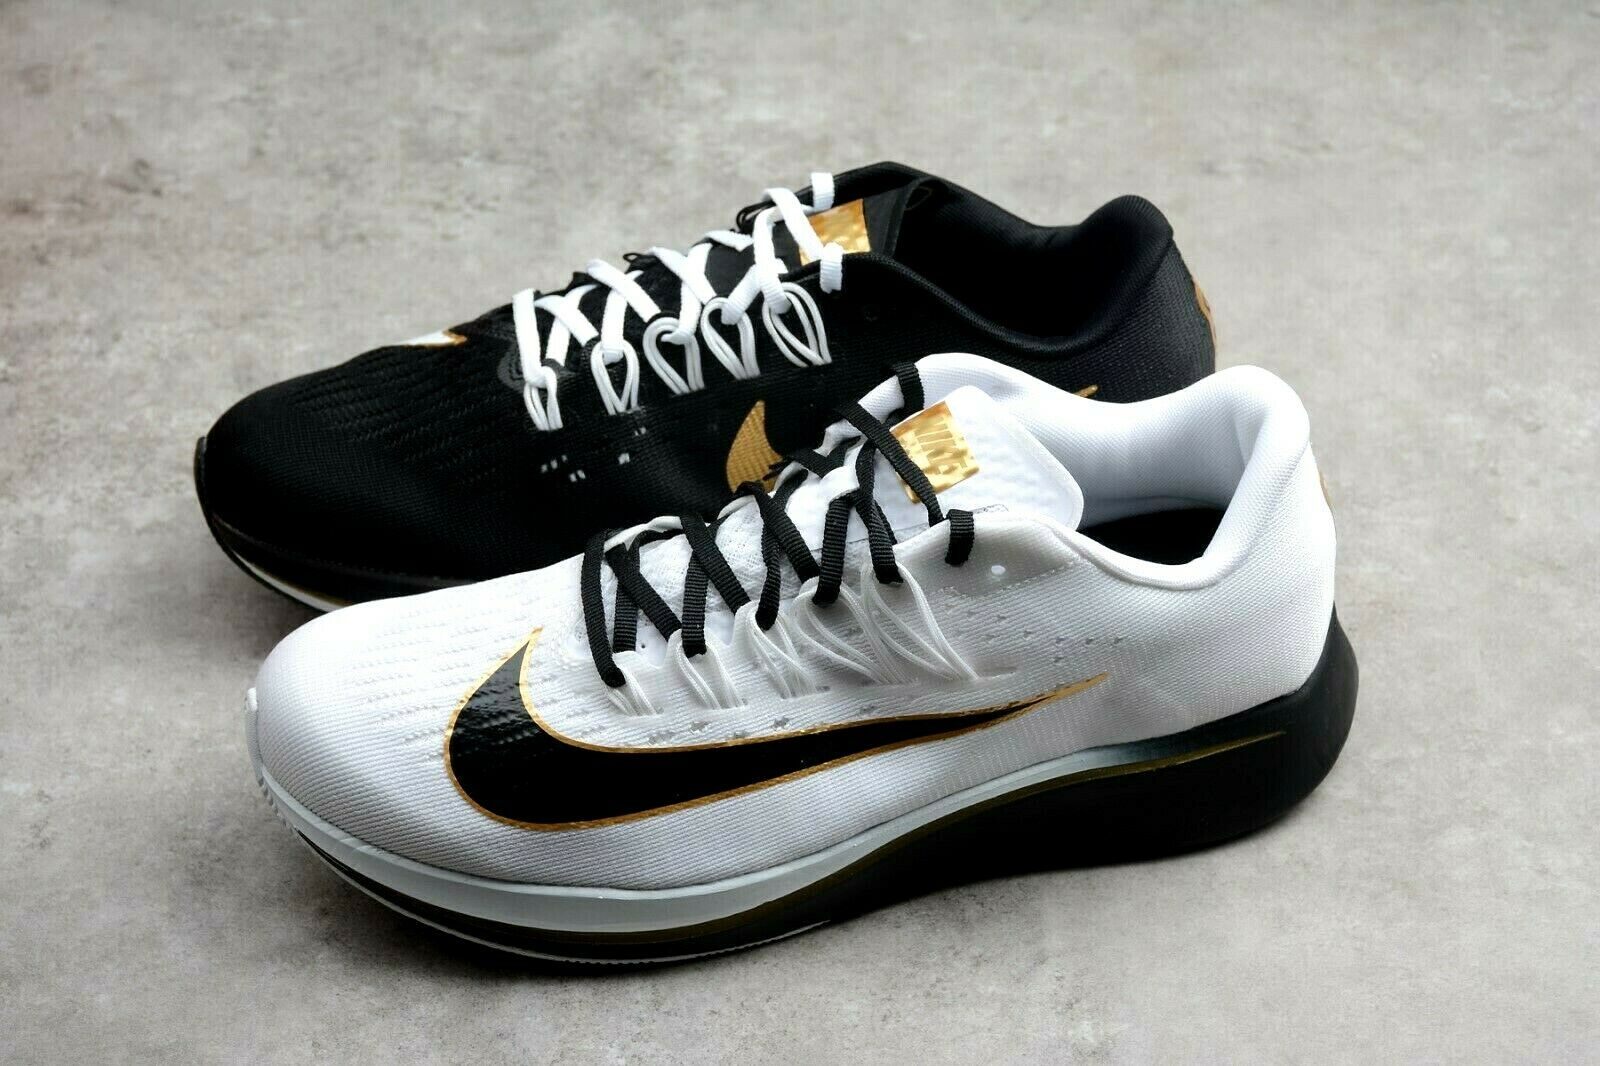 15cb2e08bfd Nike Zoom Fly Mismatch Running Shoes BLK WHT Gold Men Size 9 880848 ...